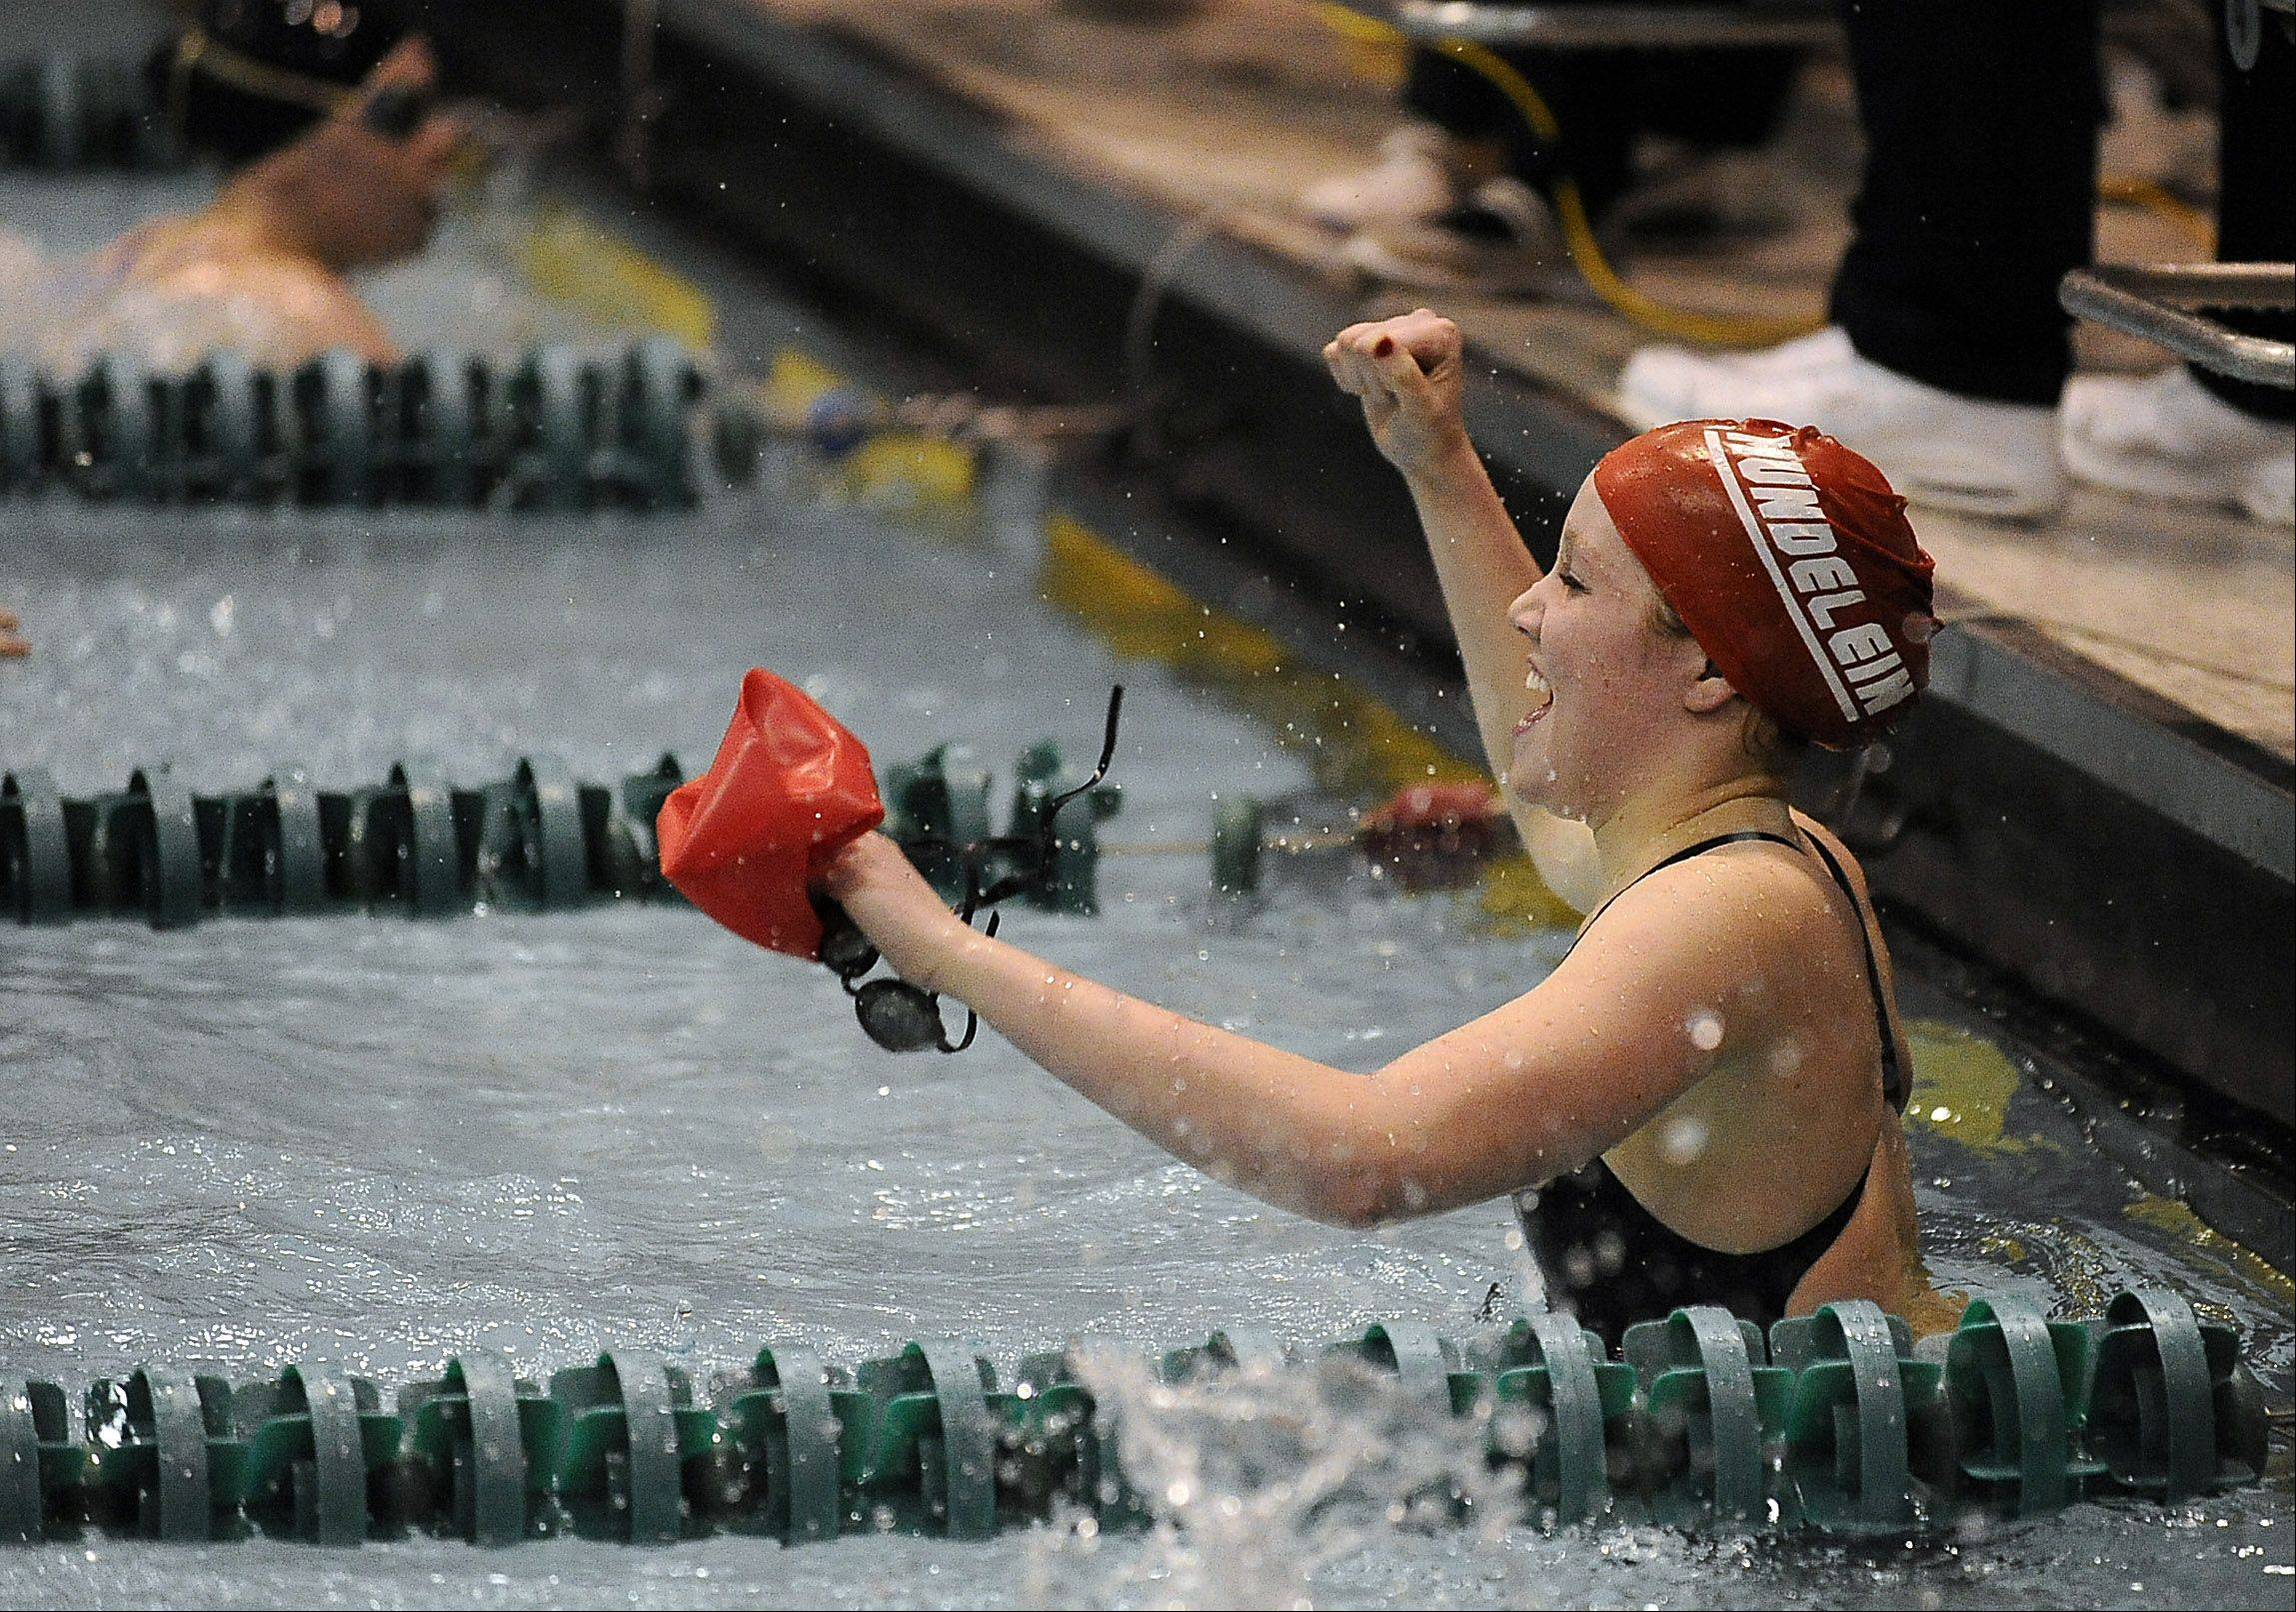 Mundelein's Erin Falconer celebrates after her heat of the 200-yd freestyle.